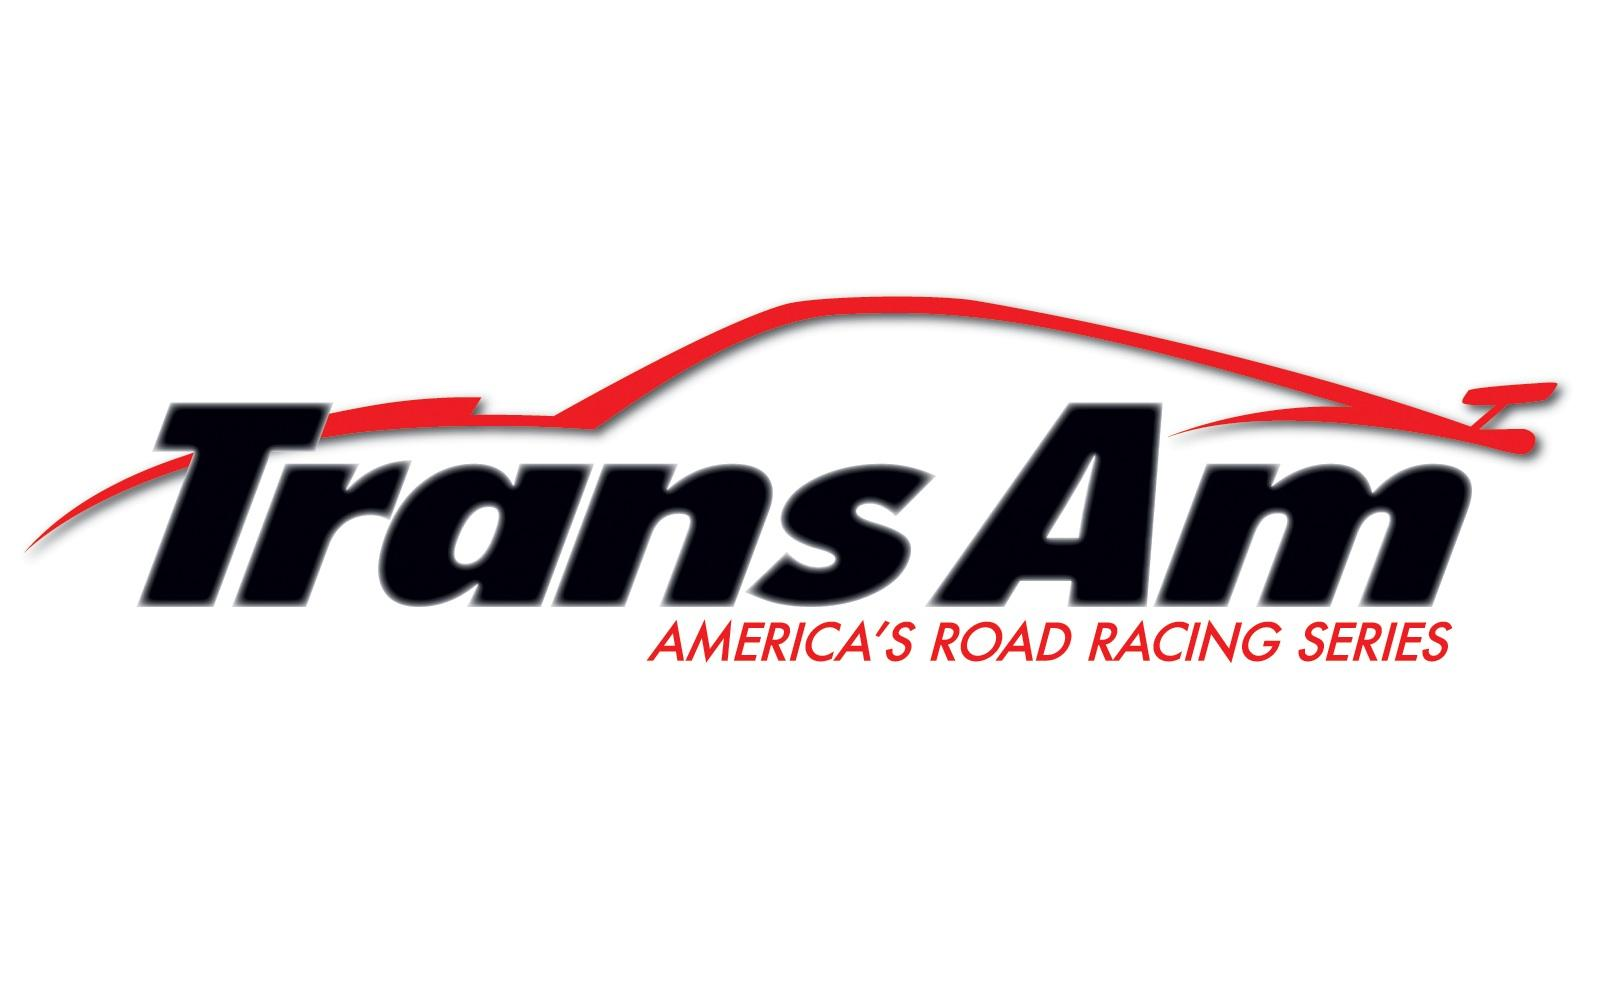 David Pintaric, previous SCCA and NASA champion launches new Trans Am Series team